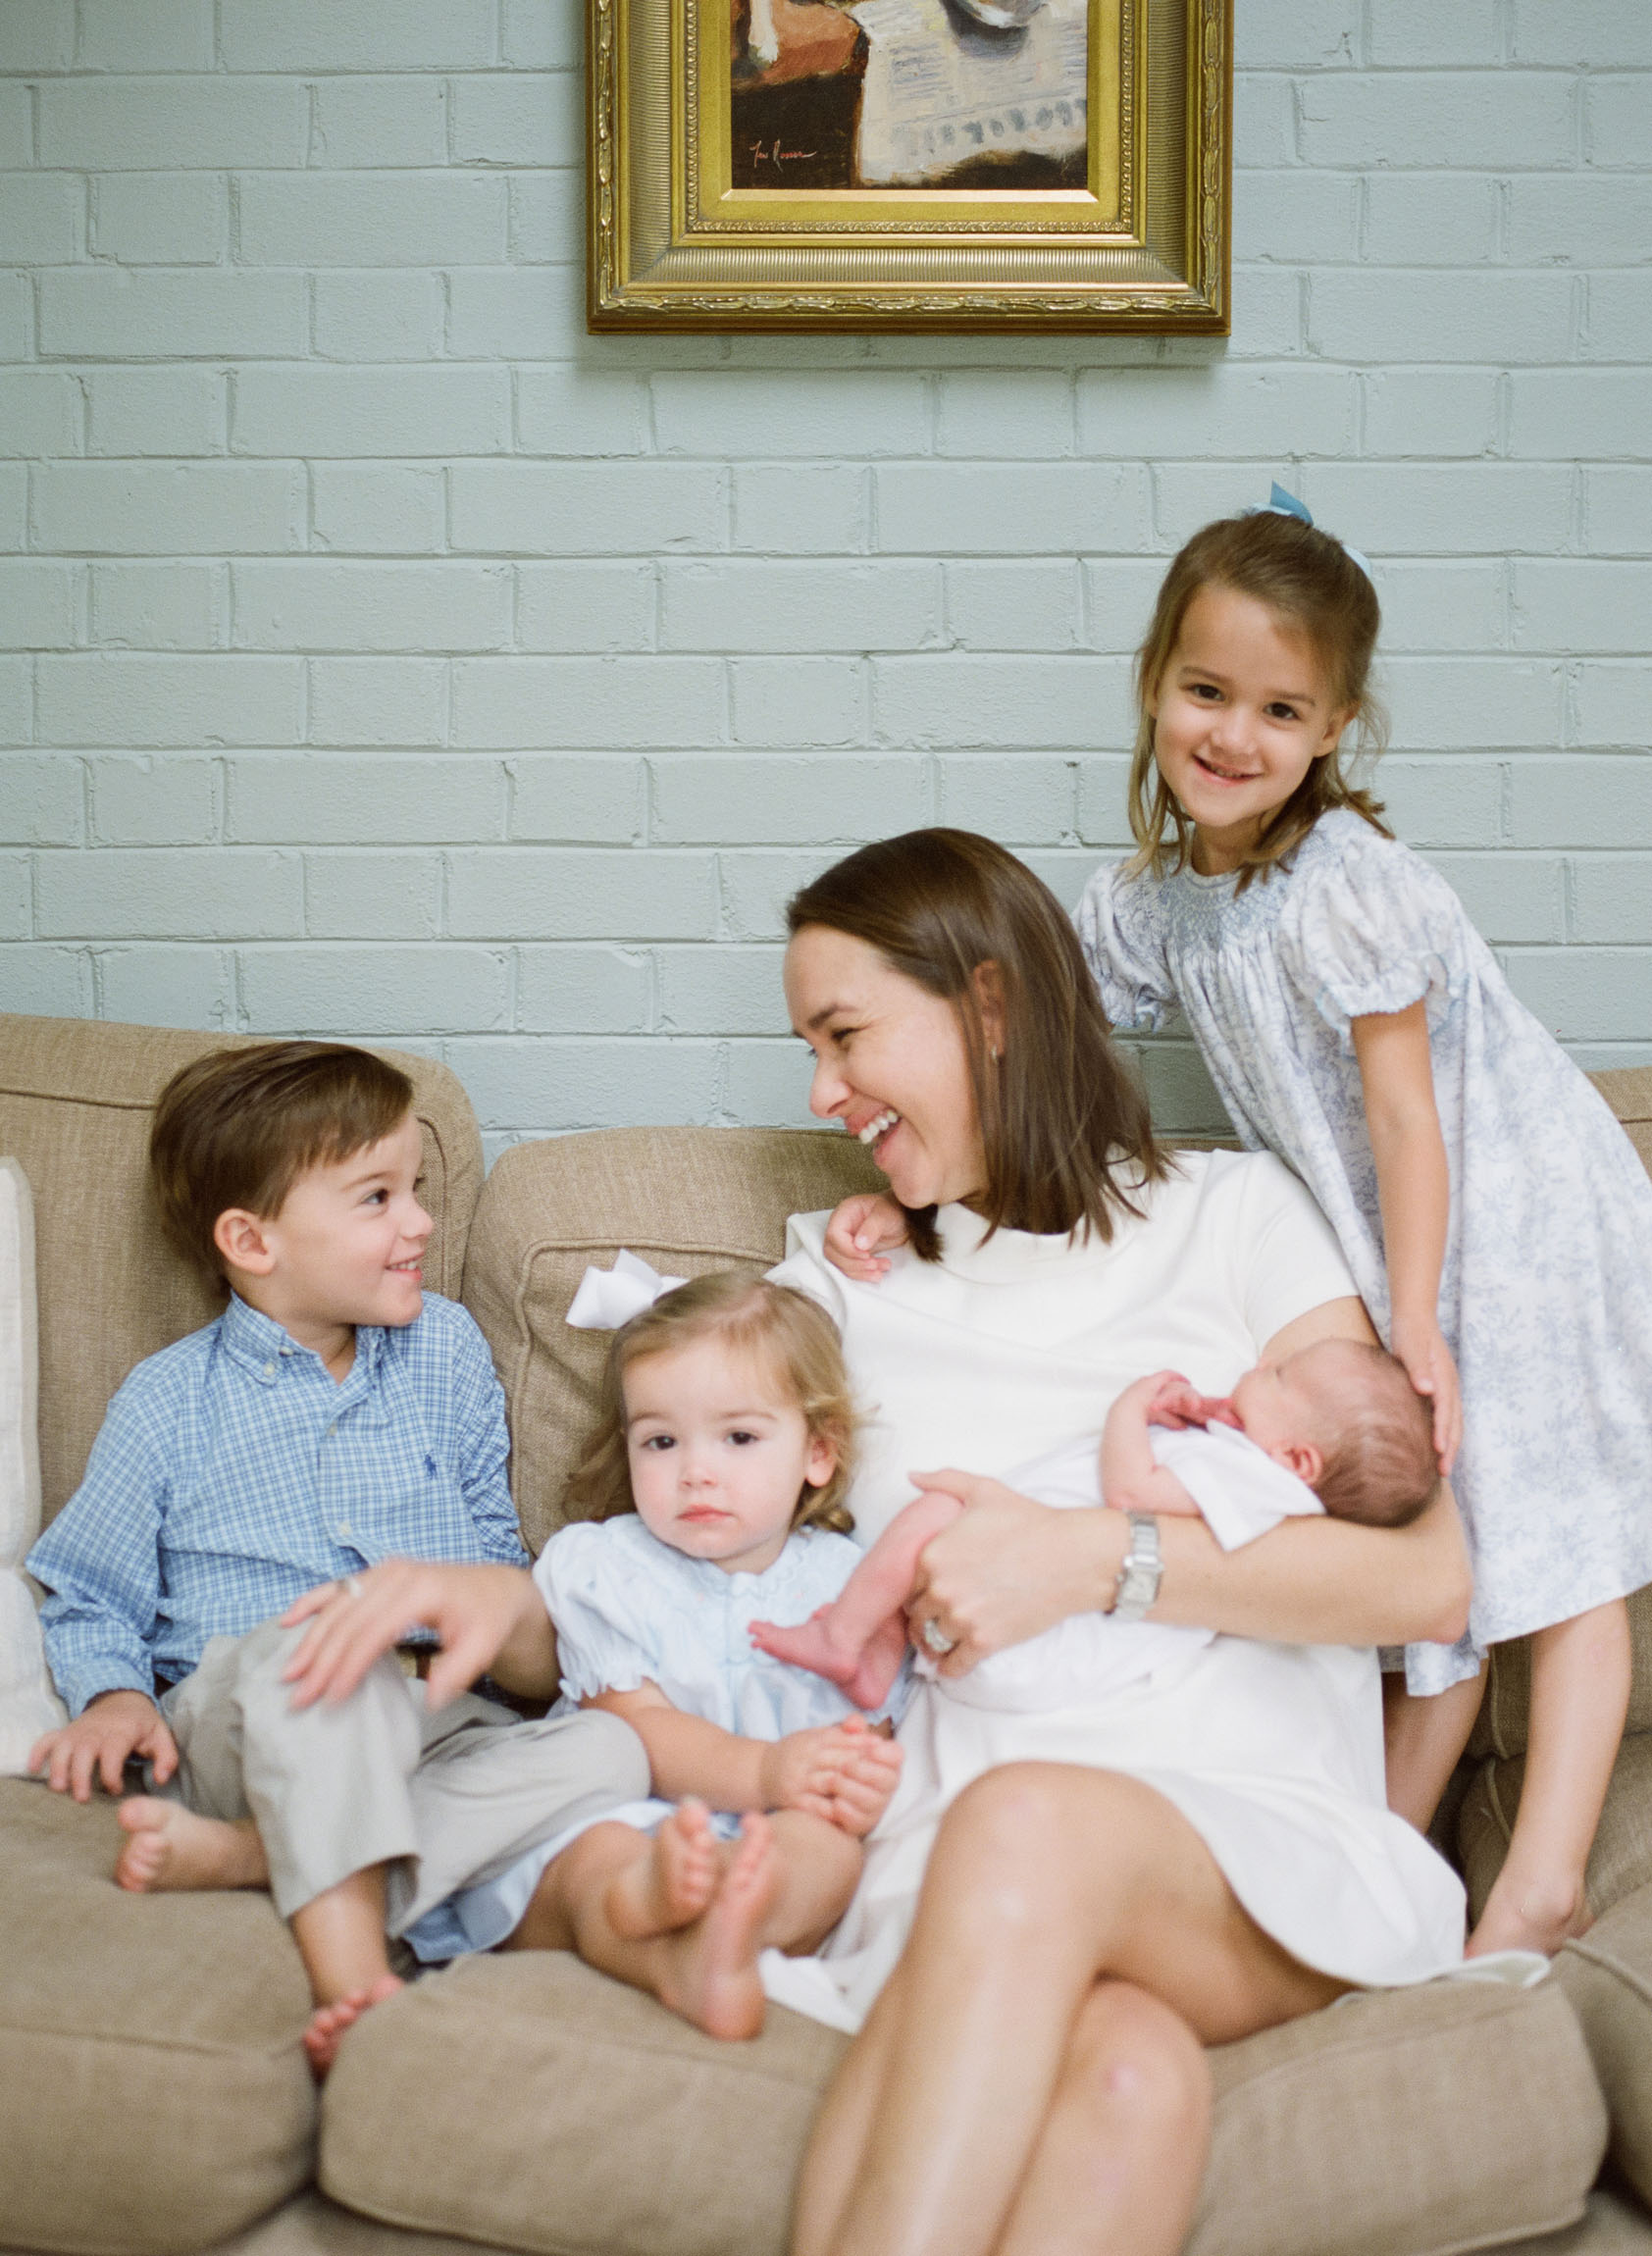 raleigh-newborn-family-film-photographer-lifestyle-session-002